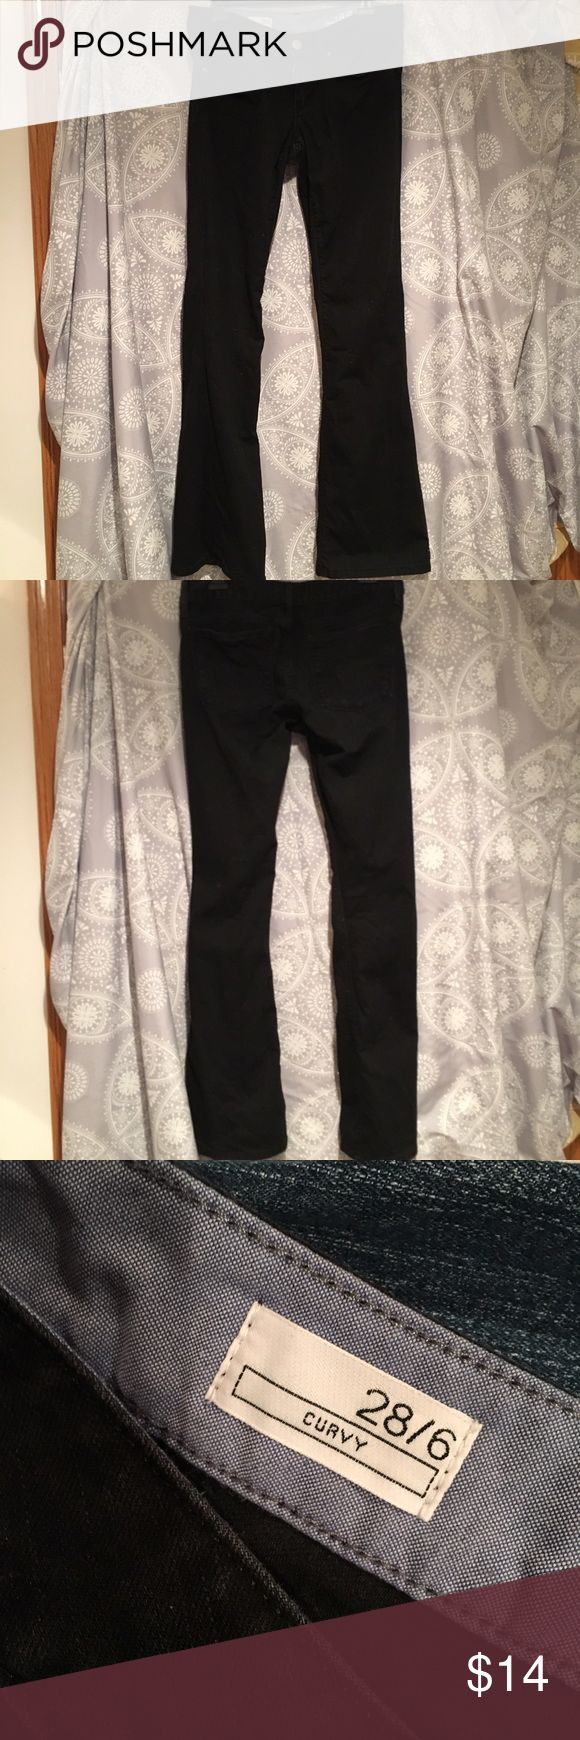 barely worn black gap curvy jeans from gaps vintage collection, these jeans are super cute and fit really well accentuating curves, and they're barely worn! GAP Jeans Flare & Wide Leg